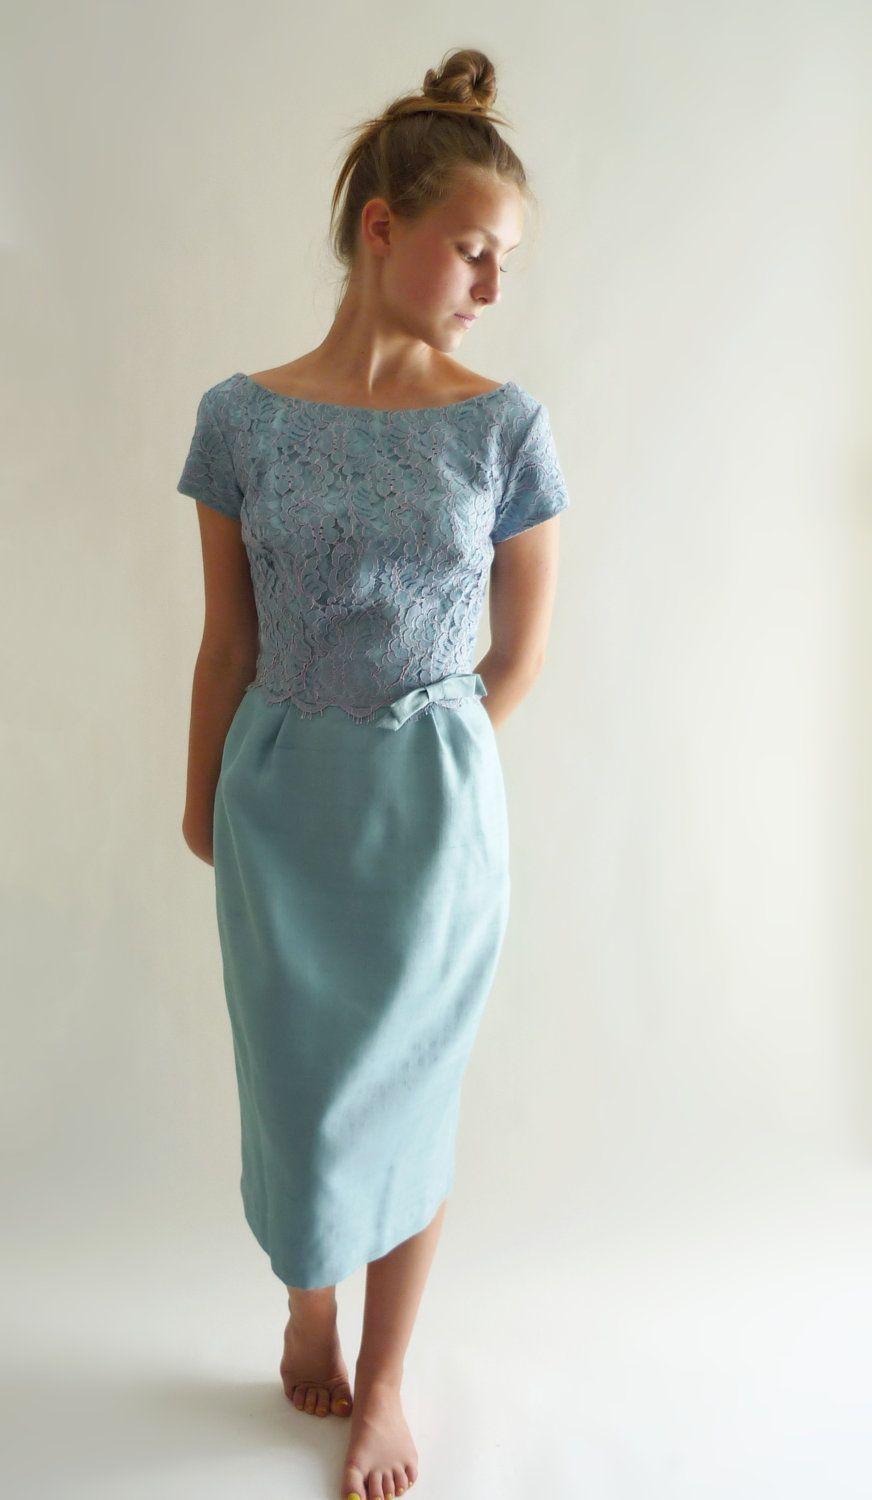 S cocktail dress blue dupioni silk cocktail dress with lace